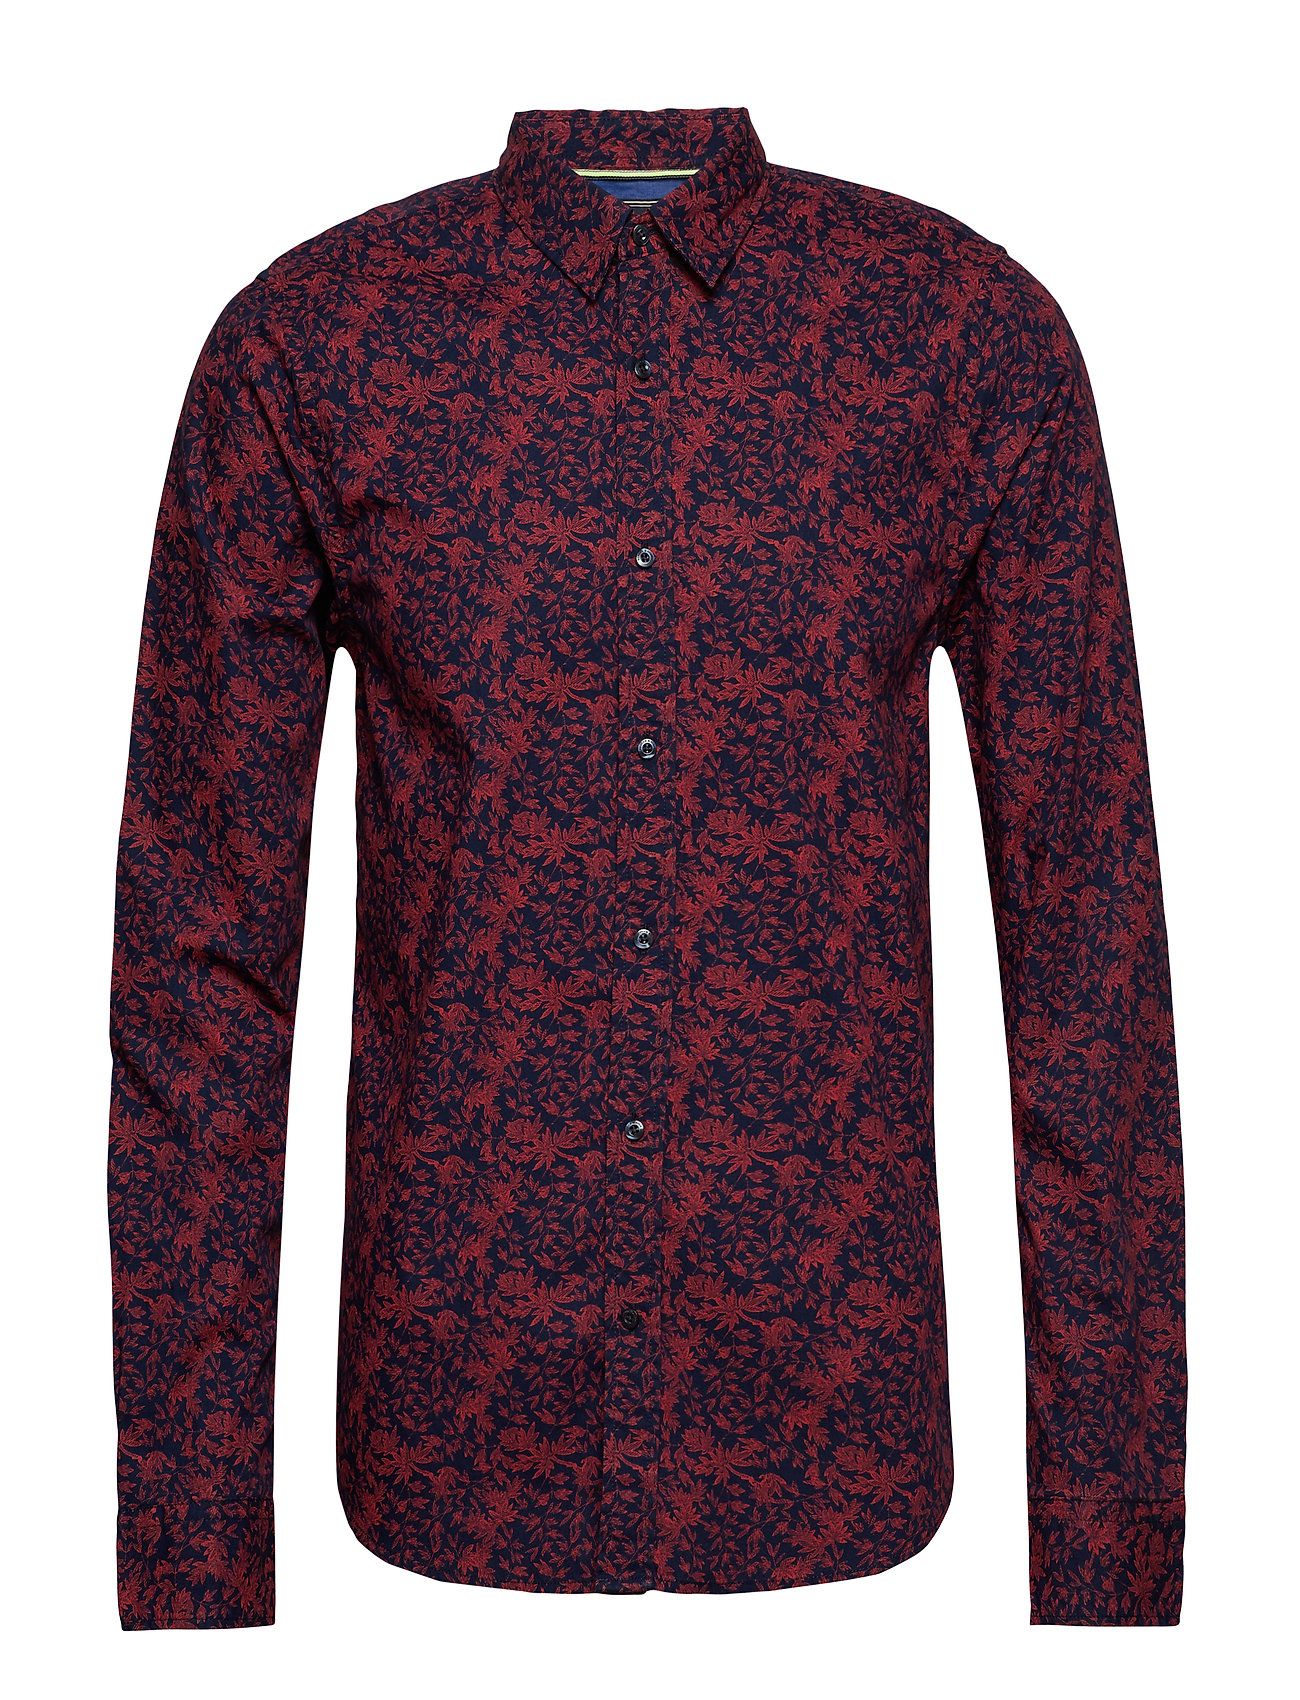 Scotch & Soda REGULAR FIT - Classic all-over printed shirt - COMBO A